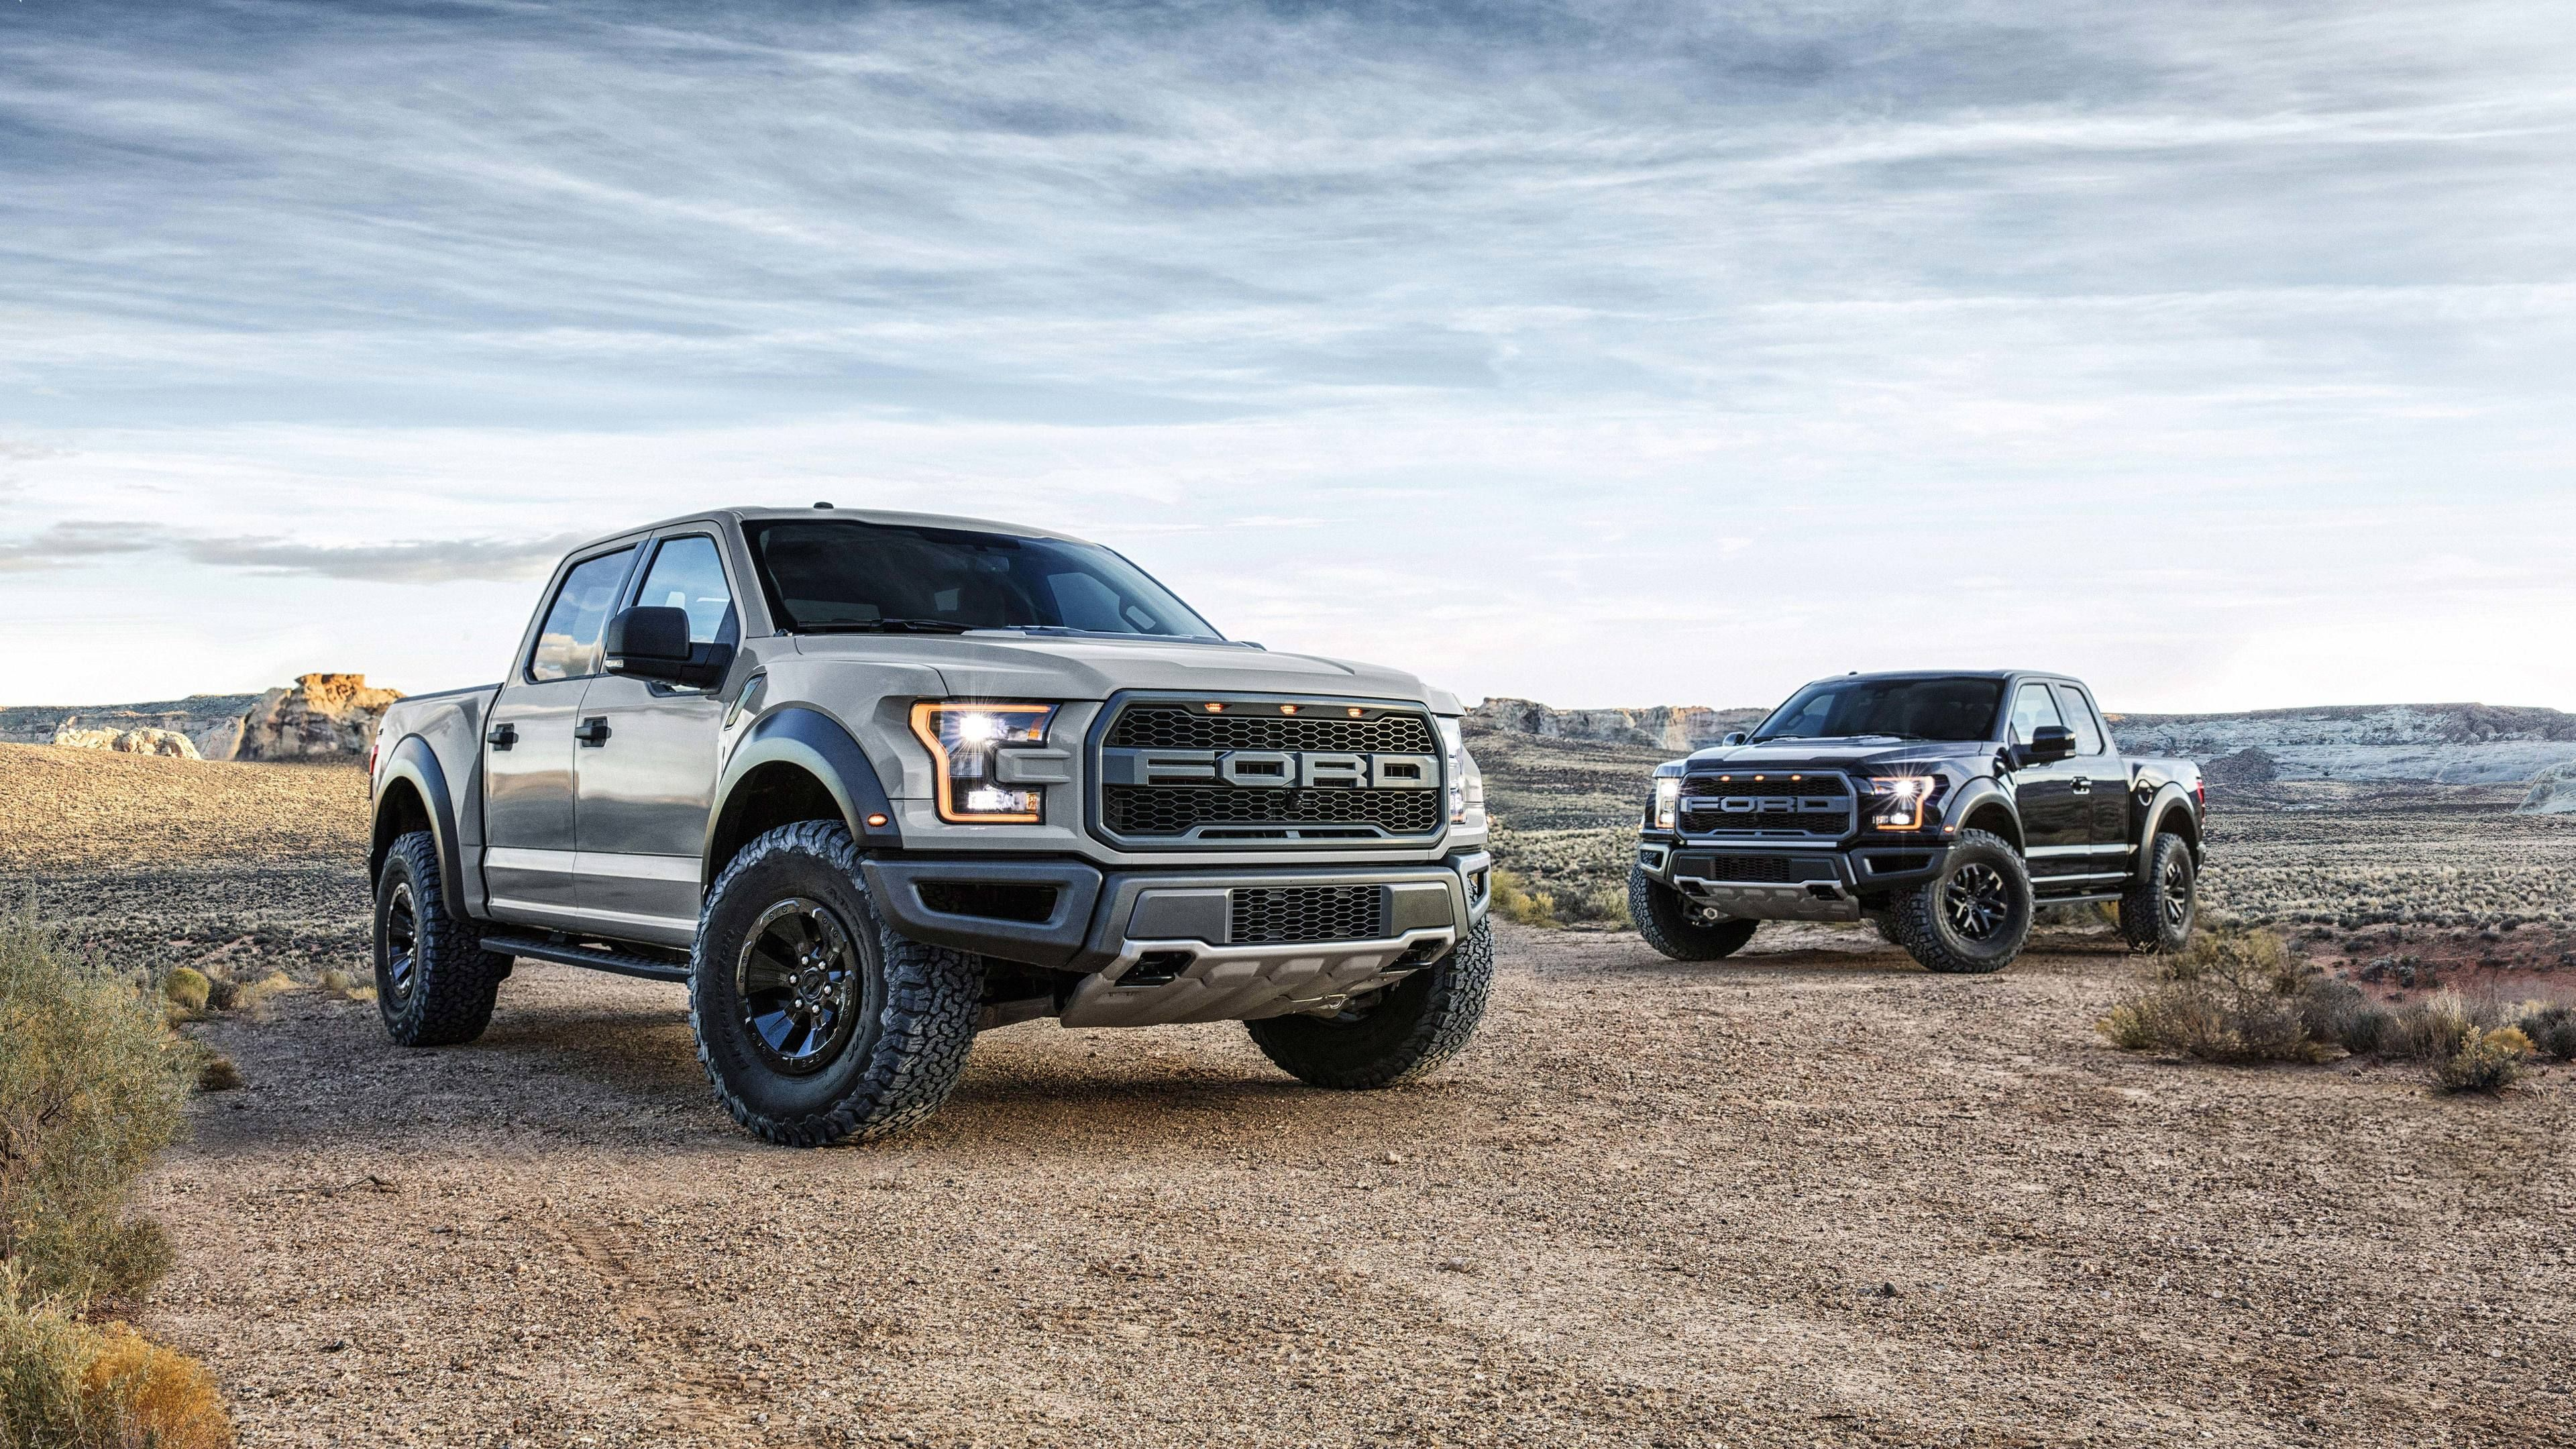 Ford F150 Raptor Truck Wallpapers Hd Wallpapers Ford Wallpapers Ford Raptor Wallpapers Cars Wallpapers 5k Wal Ford F150 Raptor Ford F150 Ford Velociraptor